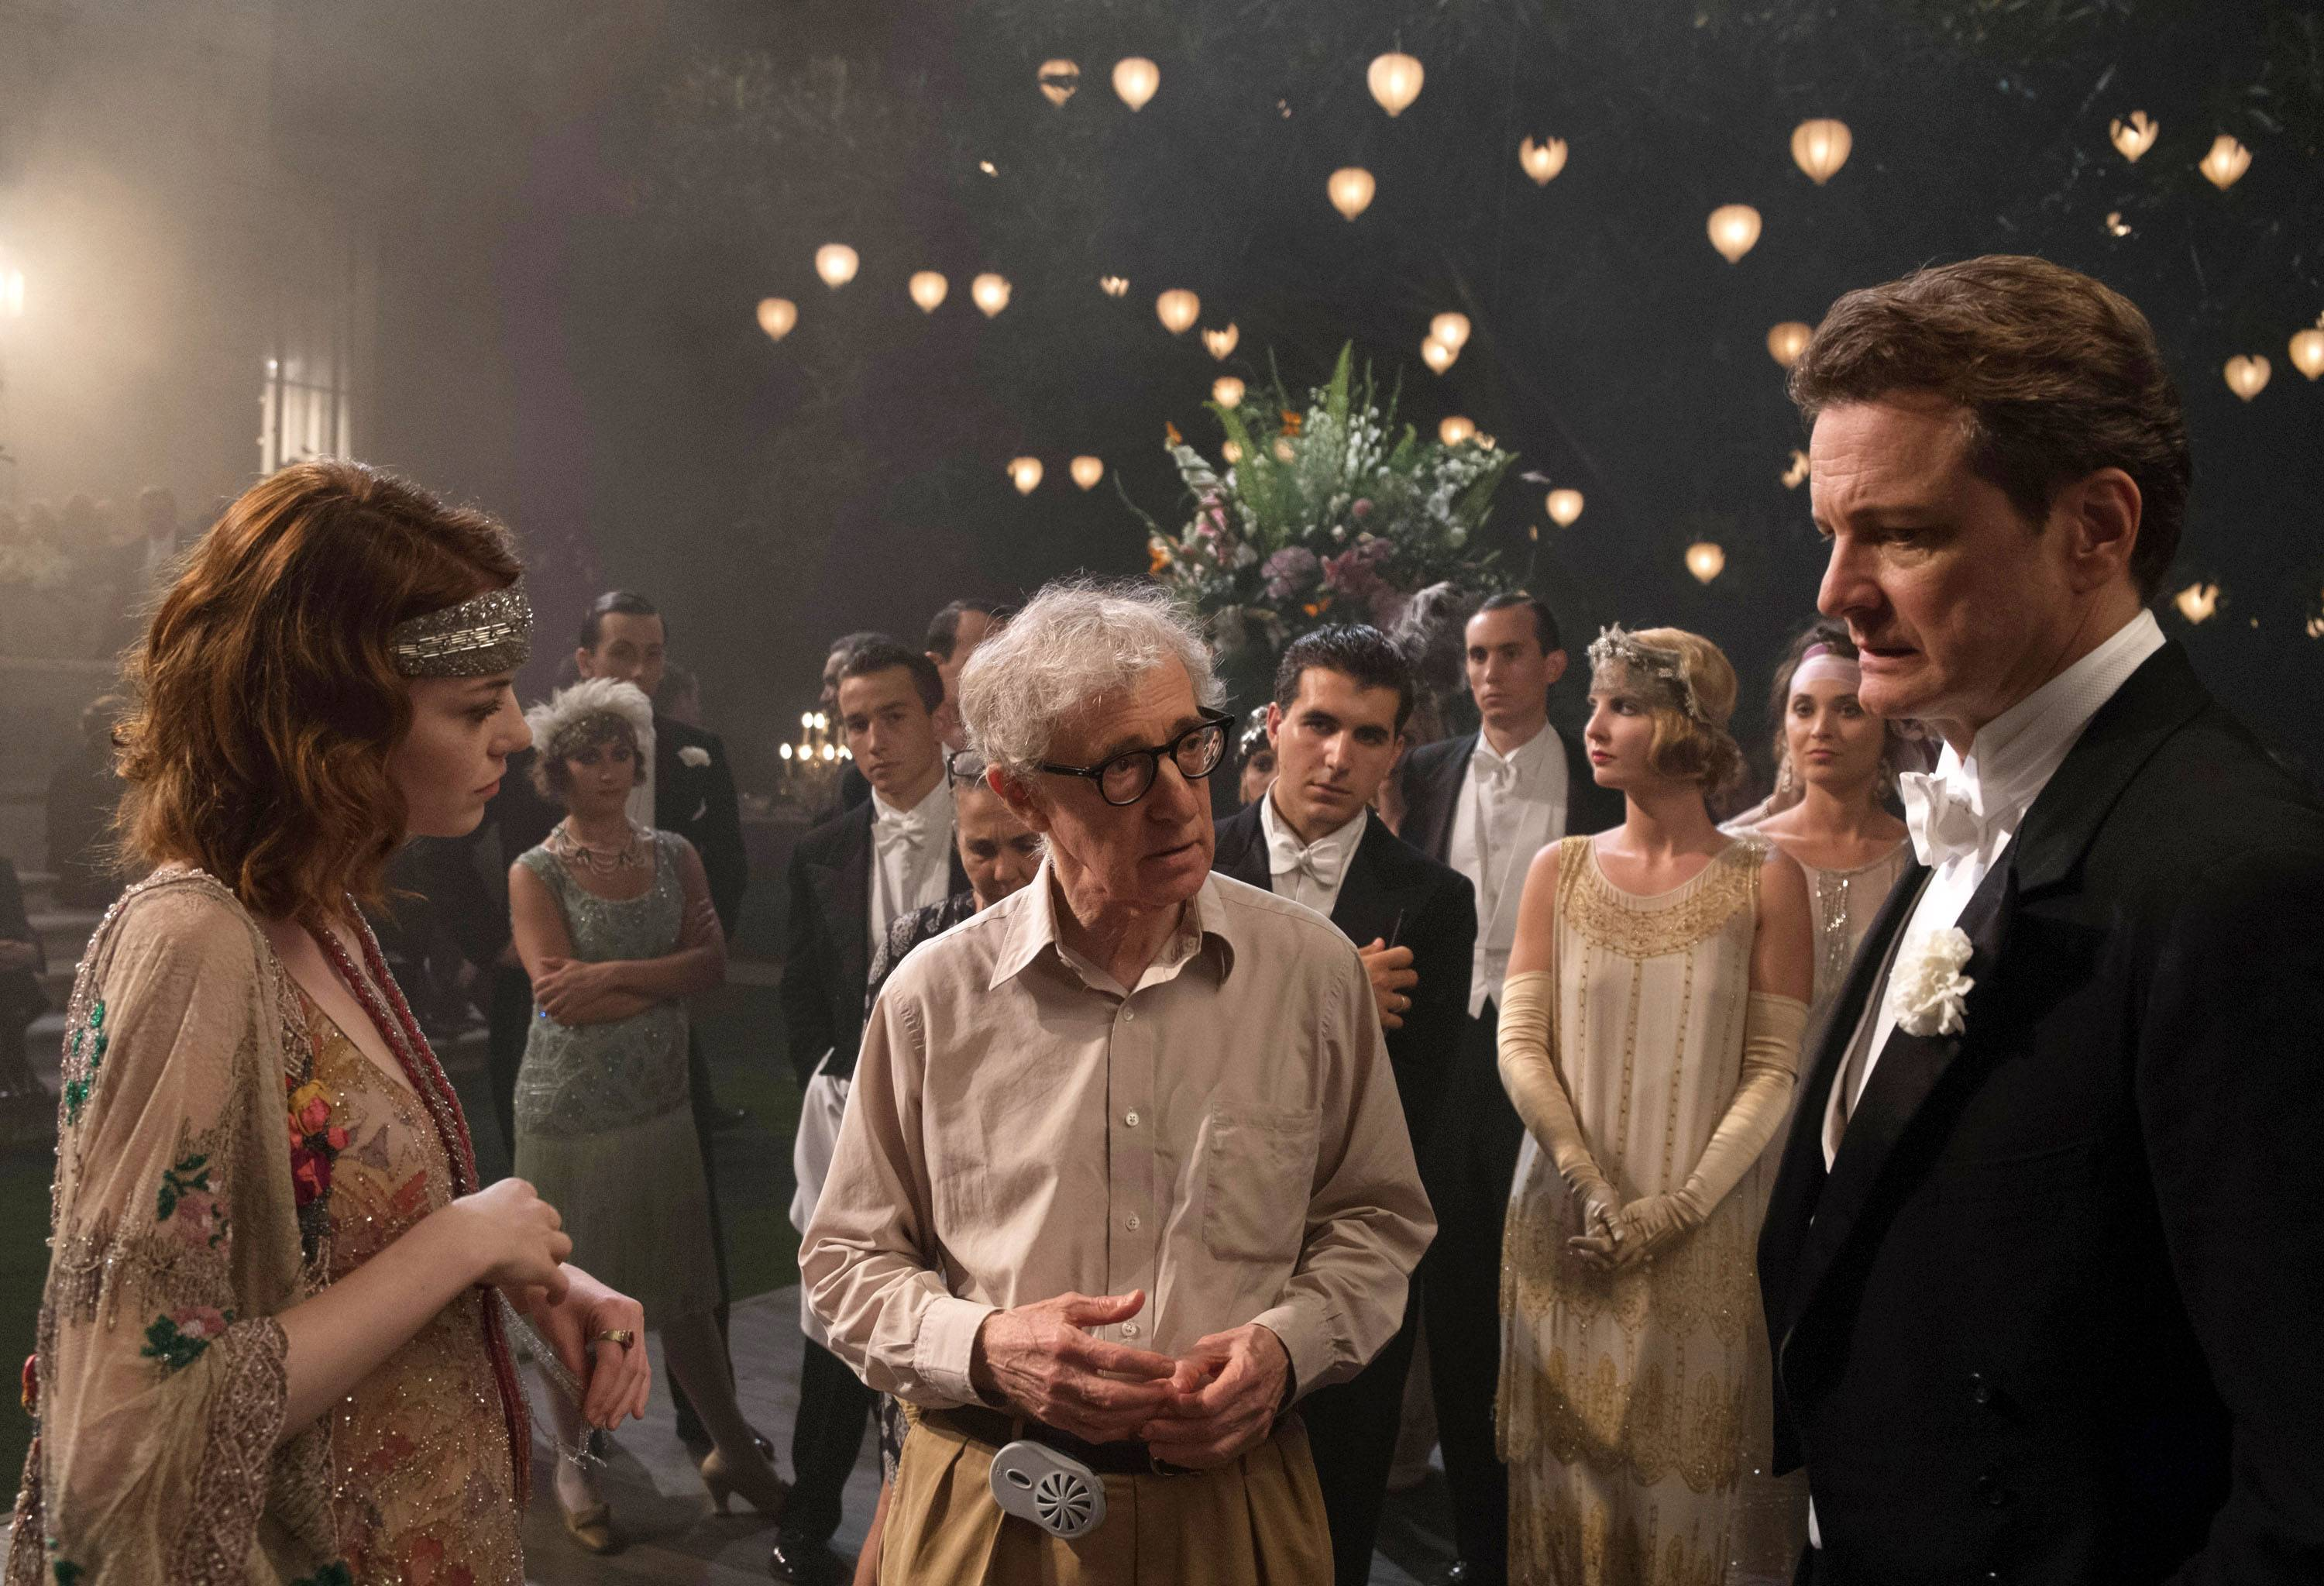 Woody Allen back in spotlight, promoting 'Magic'